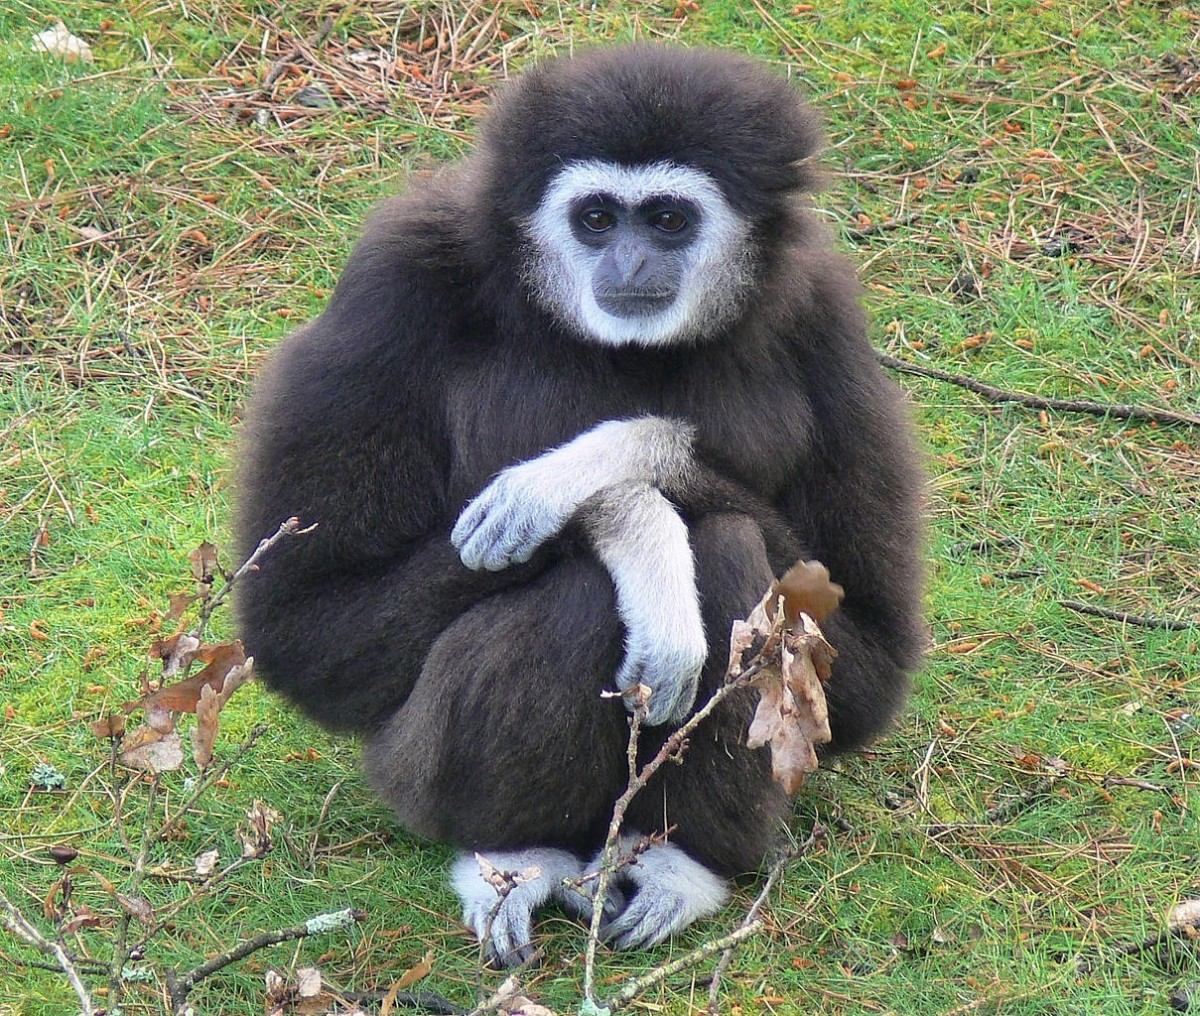 A lar or white-handed gibbon in a zoological park